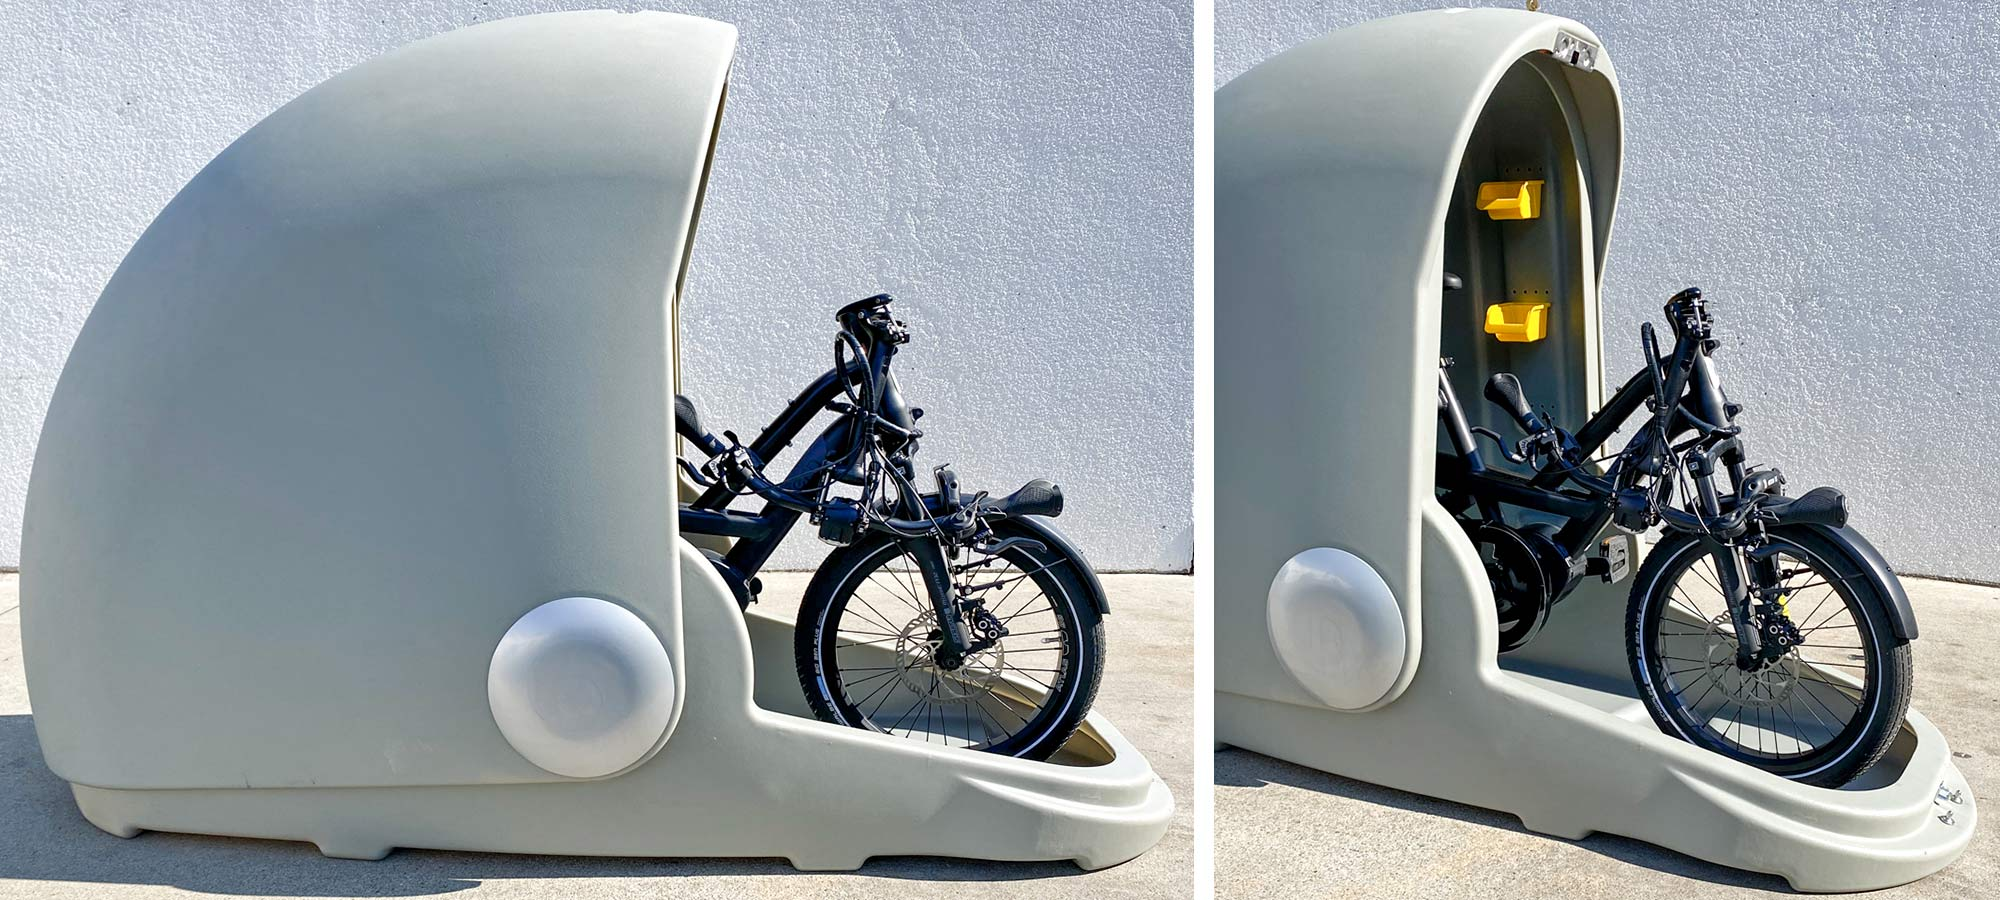 Alpen Bike Capsule offers protected, secure parking for urban commuters